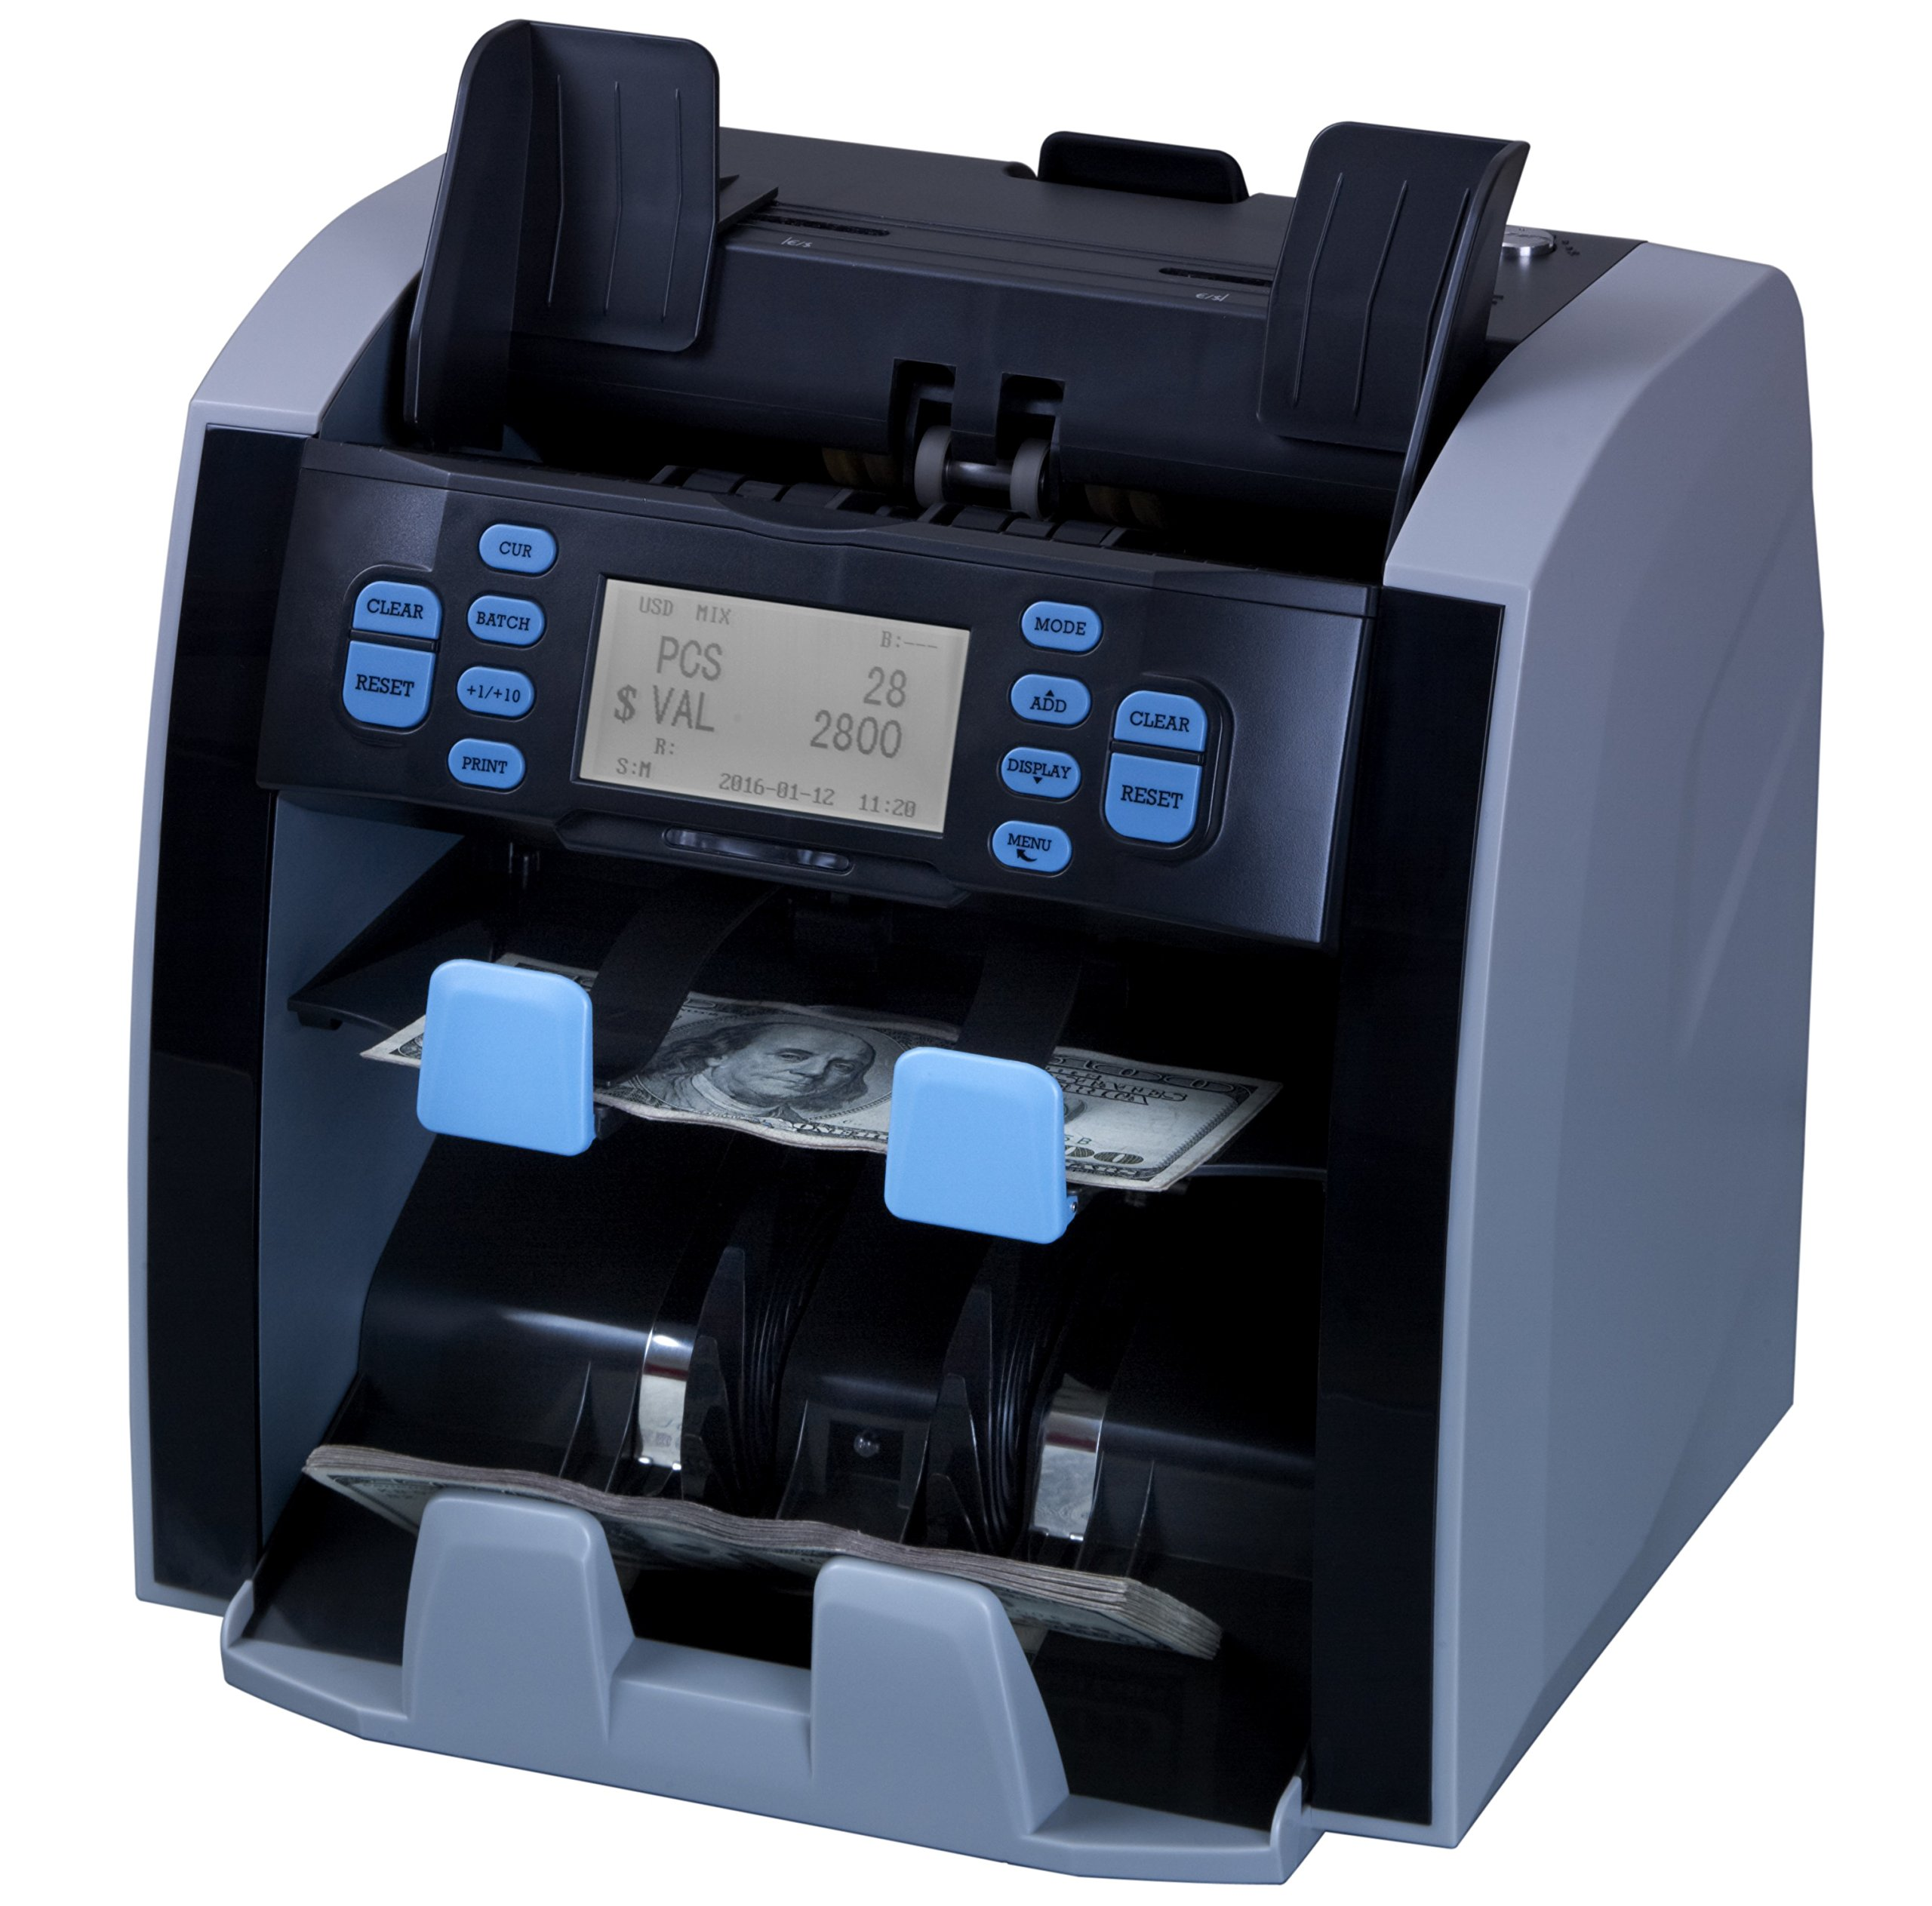 CARNATION Bank Grade Mixed Denomination Bill Counter and Sorter CR1500 with Currency Sorting Serial Number Recognition PC Conectivity and Printing Capability 2 Year Warranty